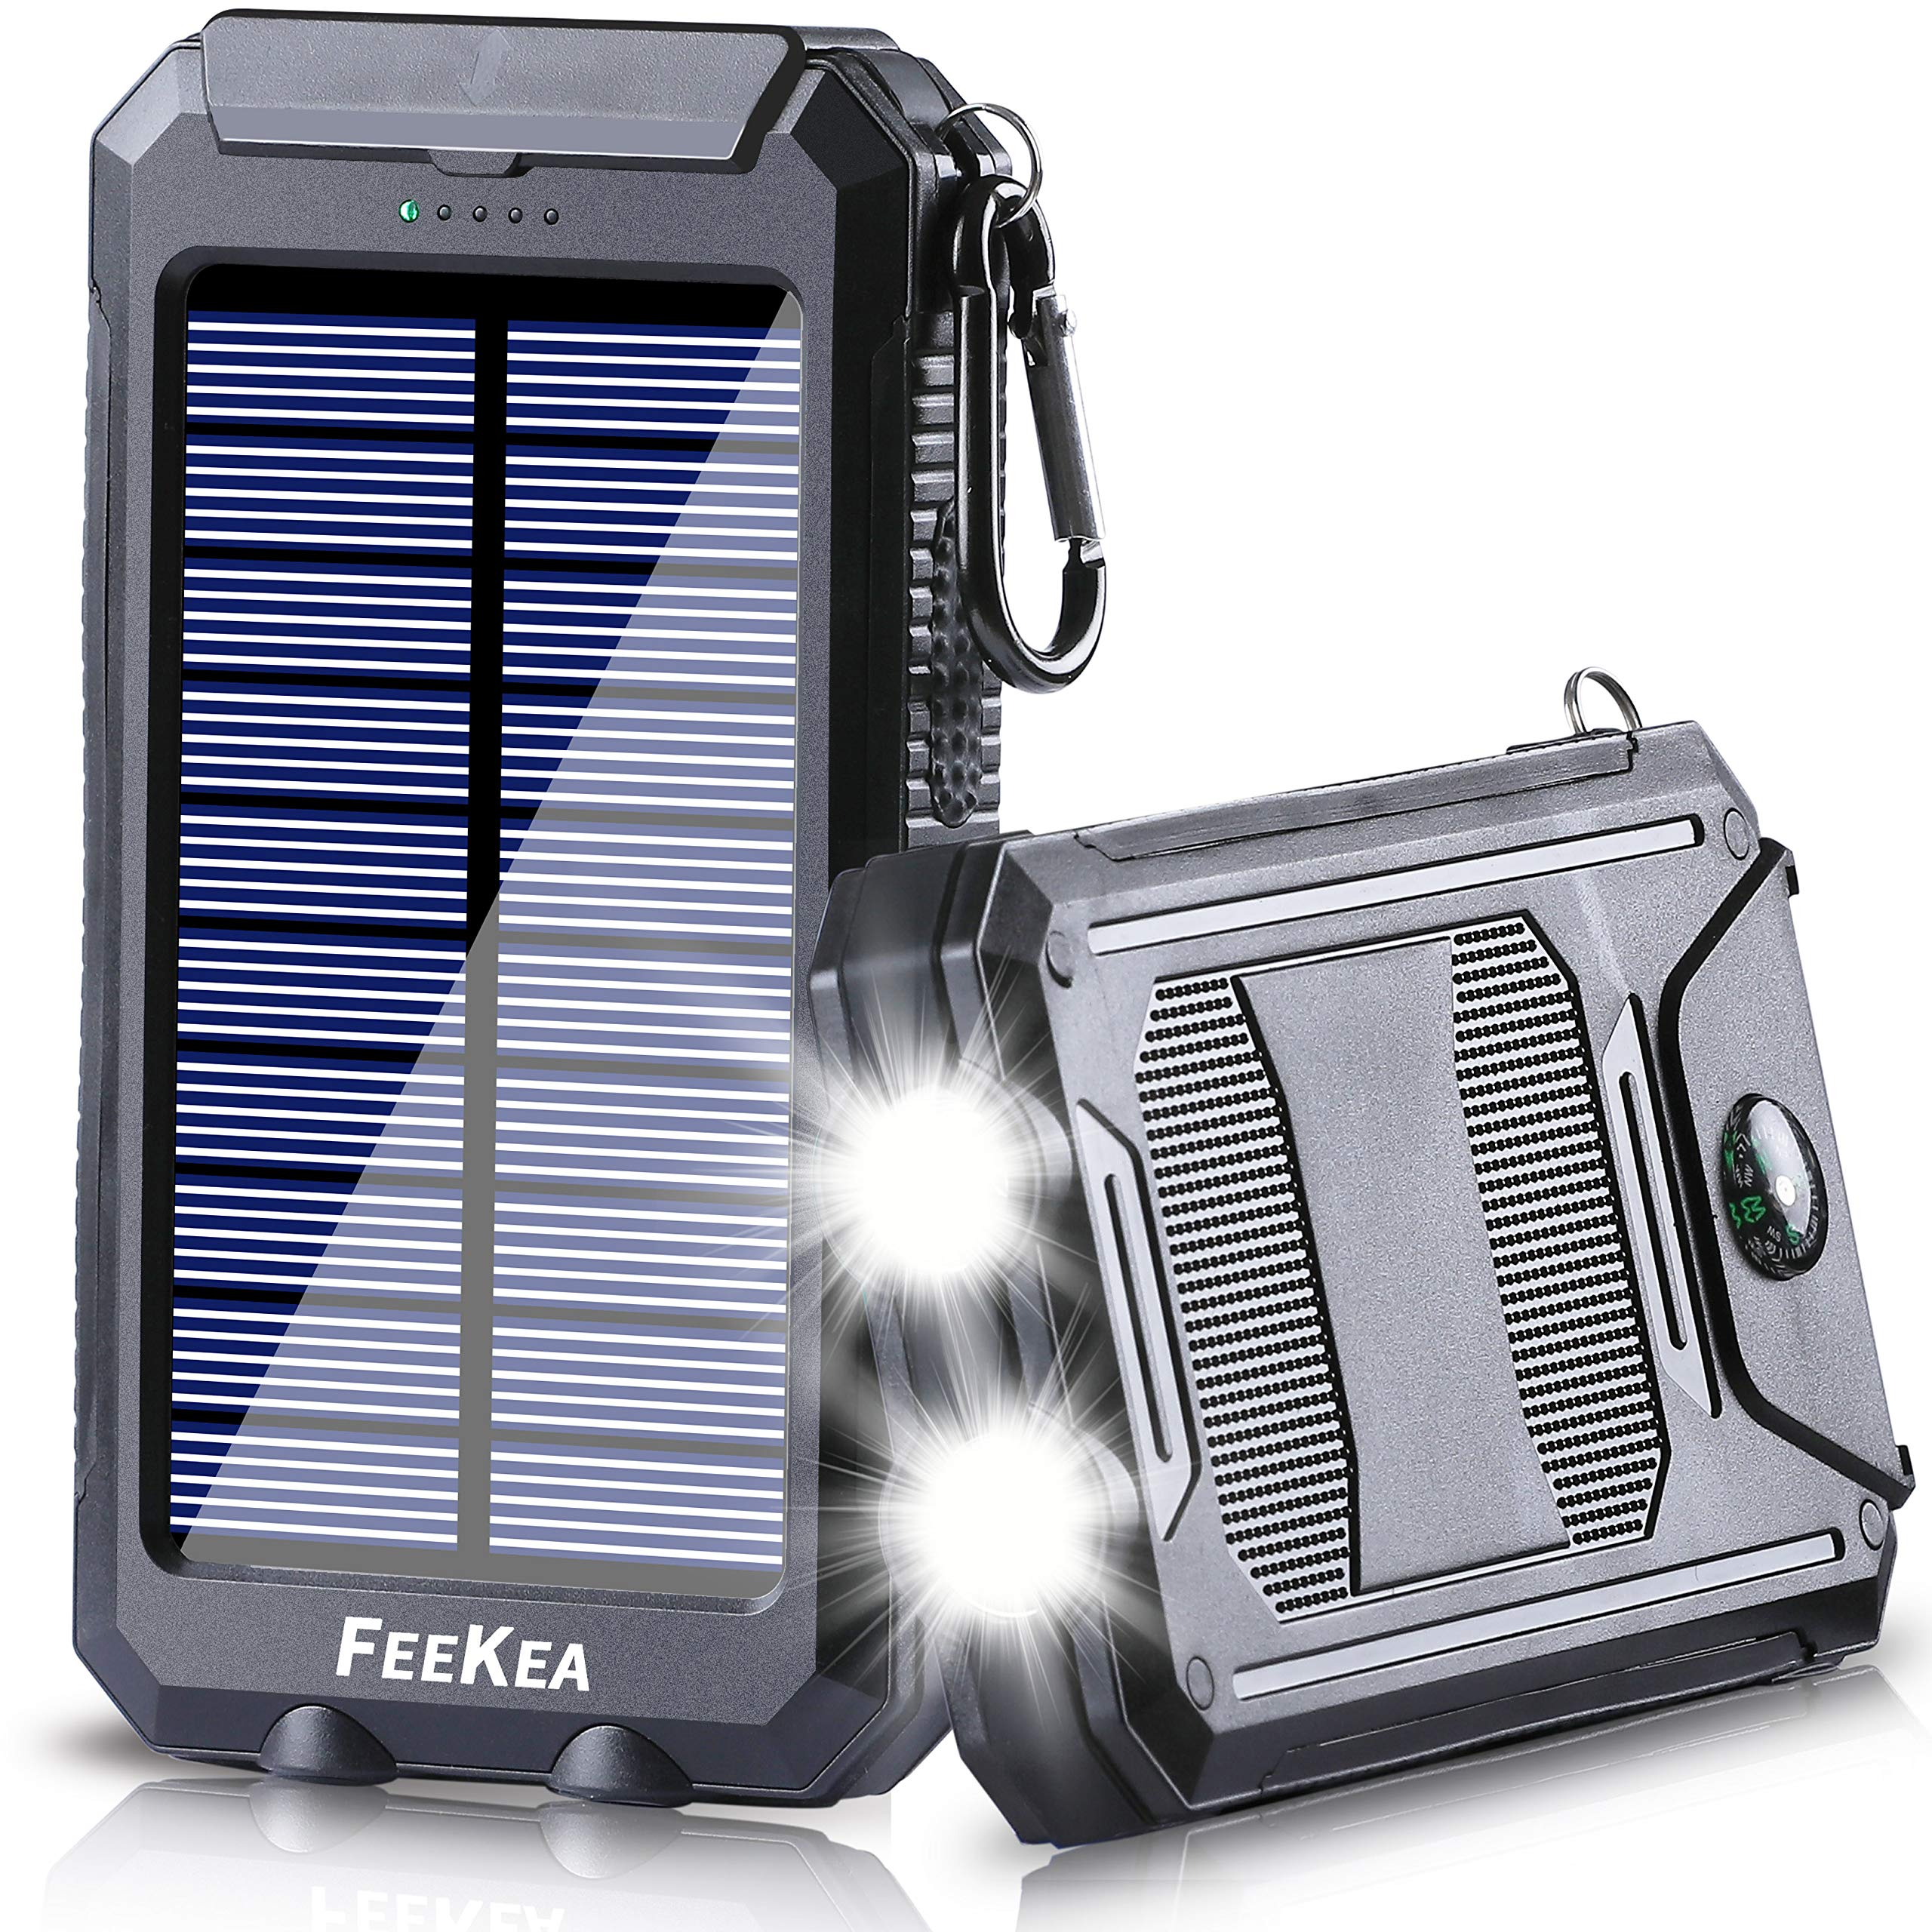 Solar Power Bank, 20000mAh Portable Solar Phone Charger External Battery Pack with Dual USB 5V 1A/2.1A Output Ports and LED Lights, Outdoor Solar Battery Charger with Compass for Cellphone and More by Feekea